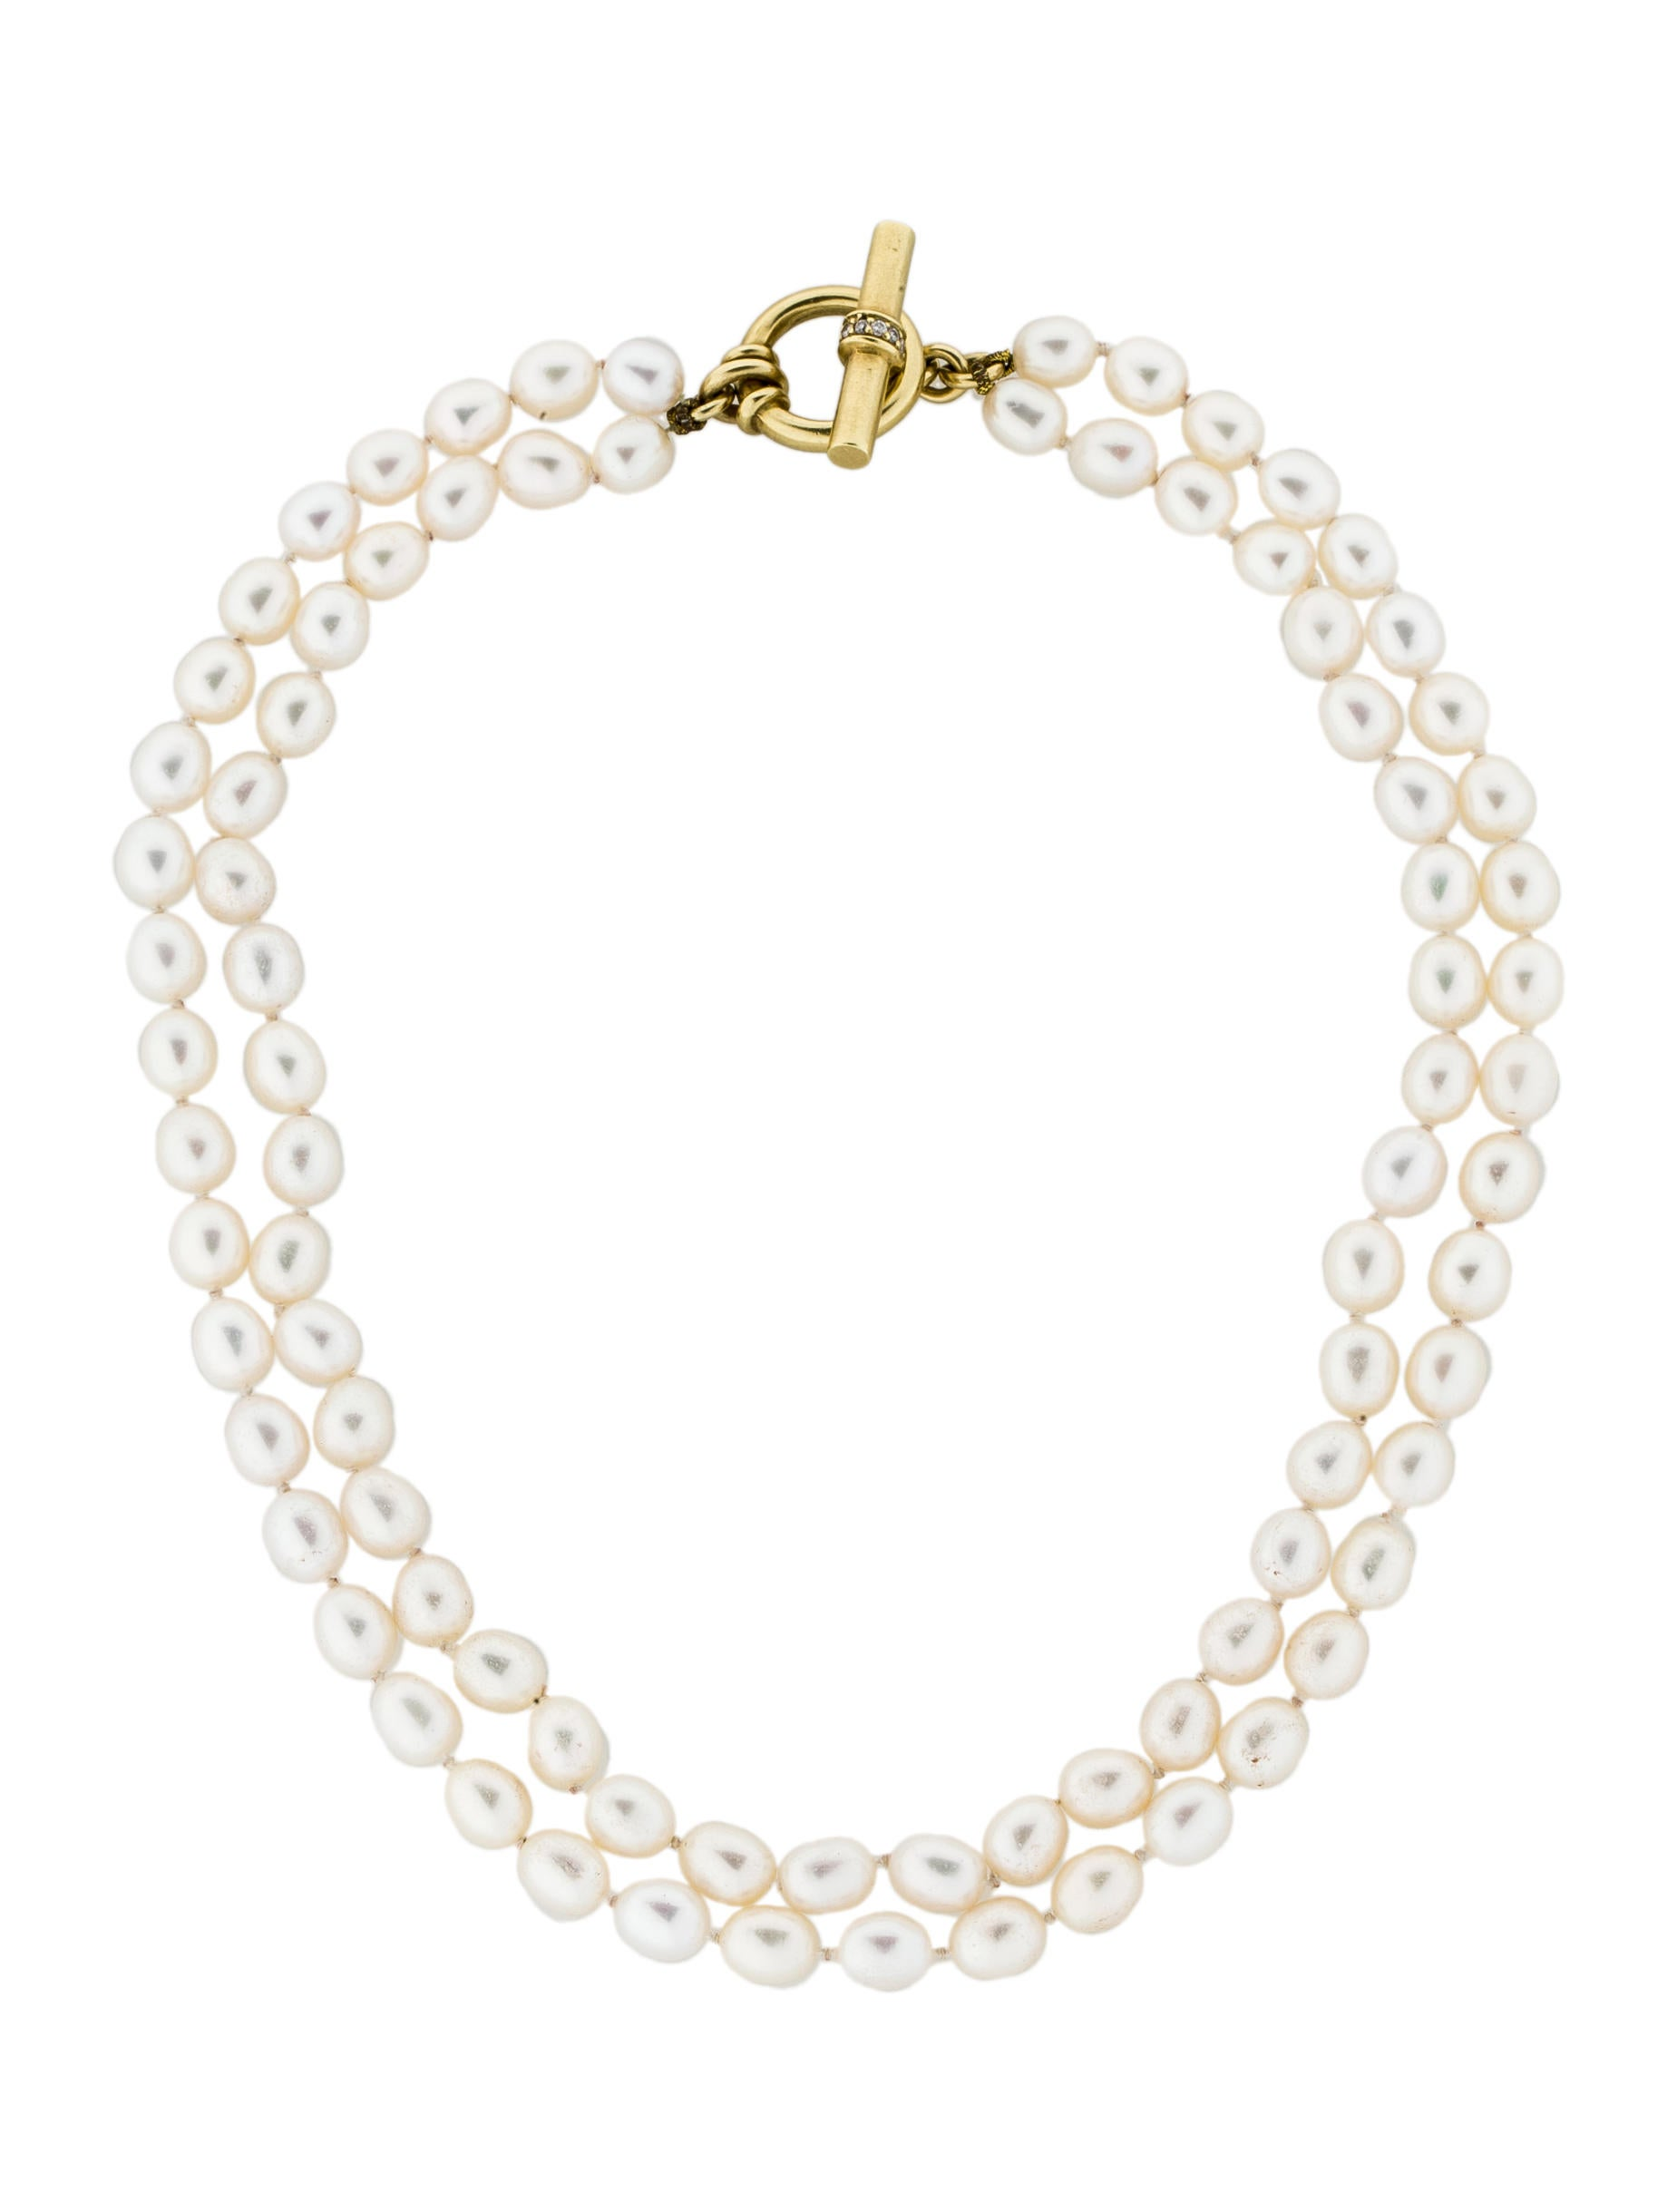 Slane Double Strand Pearl Necklace With Diamond Clasp